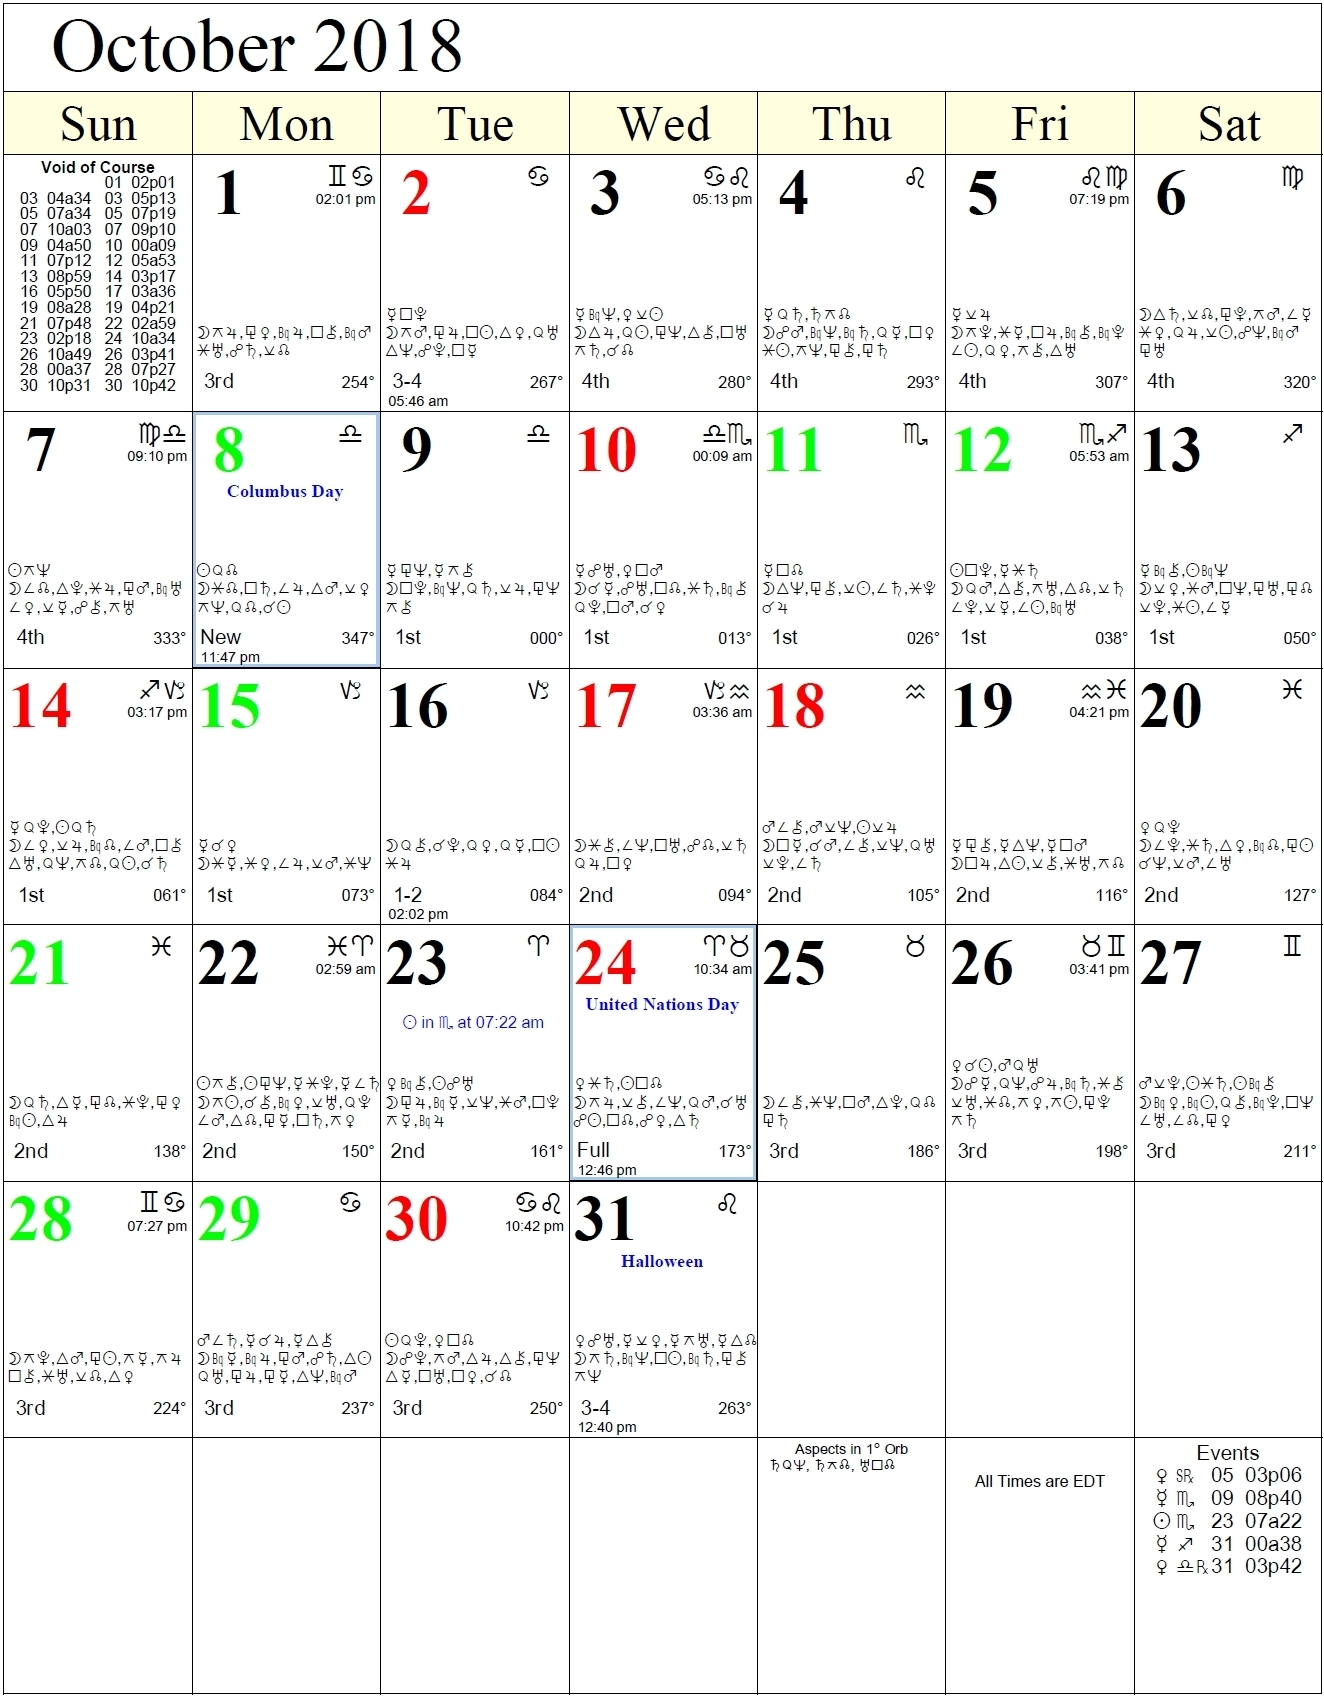 30 Day Calendar With Circle With A Line Thru It | Template Calendar inside 30 Day Calendar With Circle With A Line Thru It